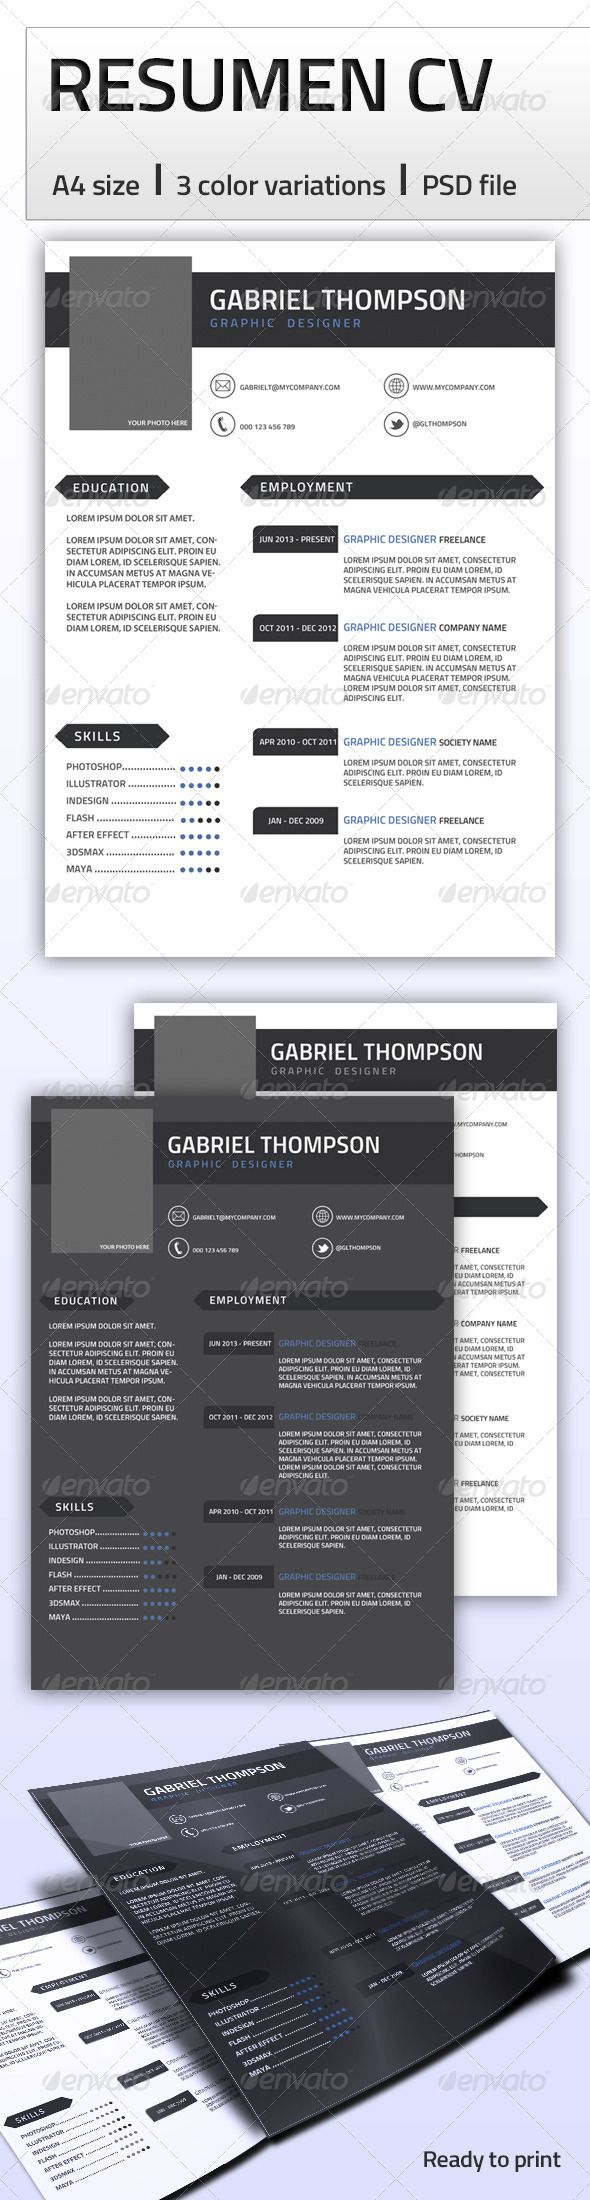 Resume CV Features Page size CMYK